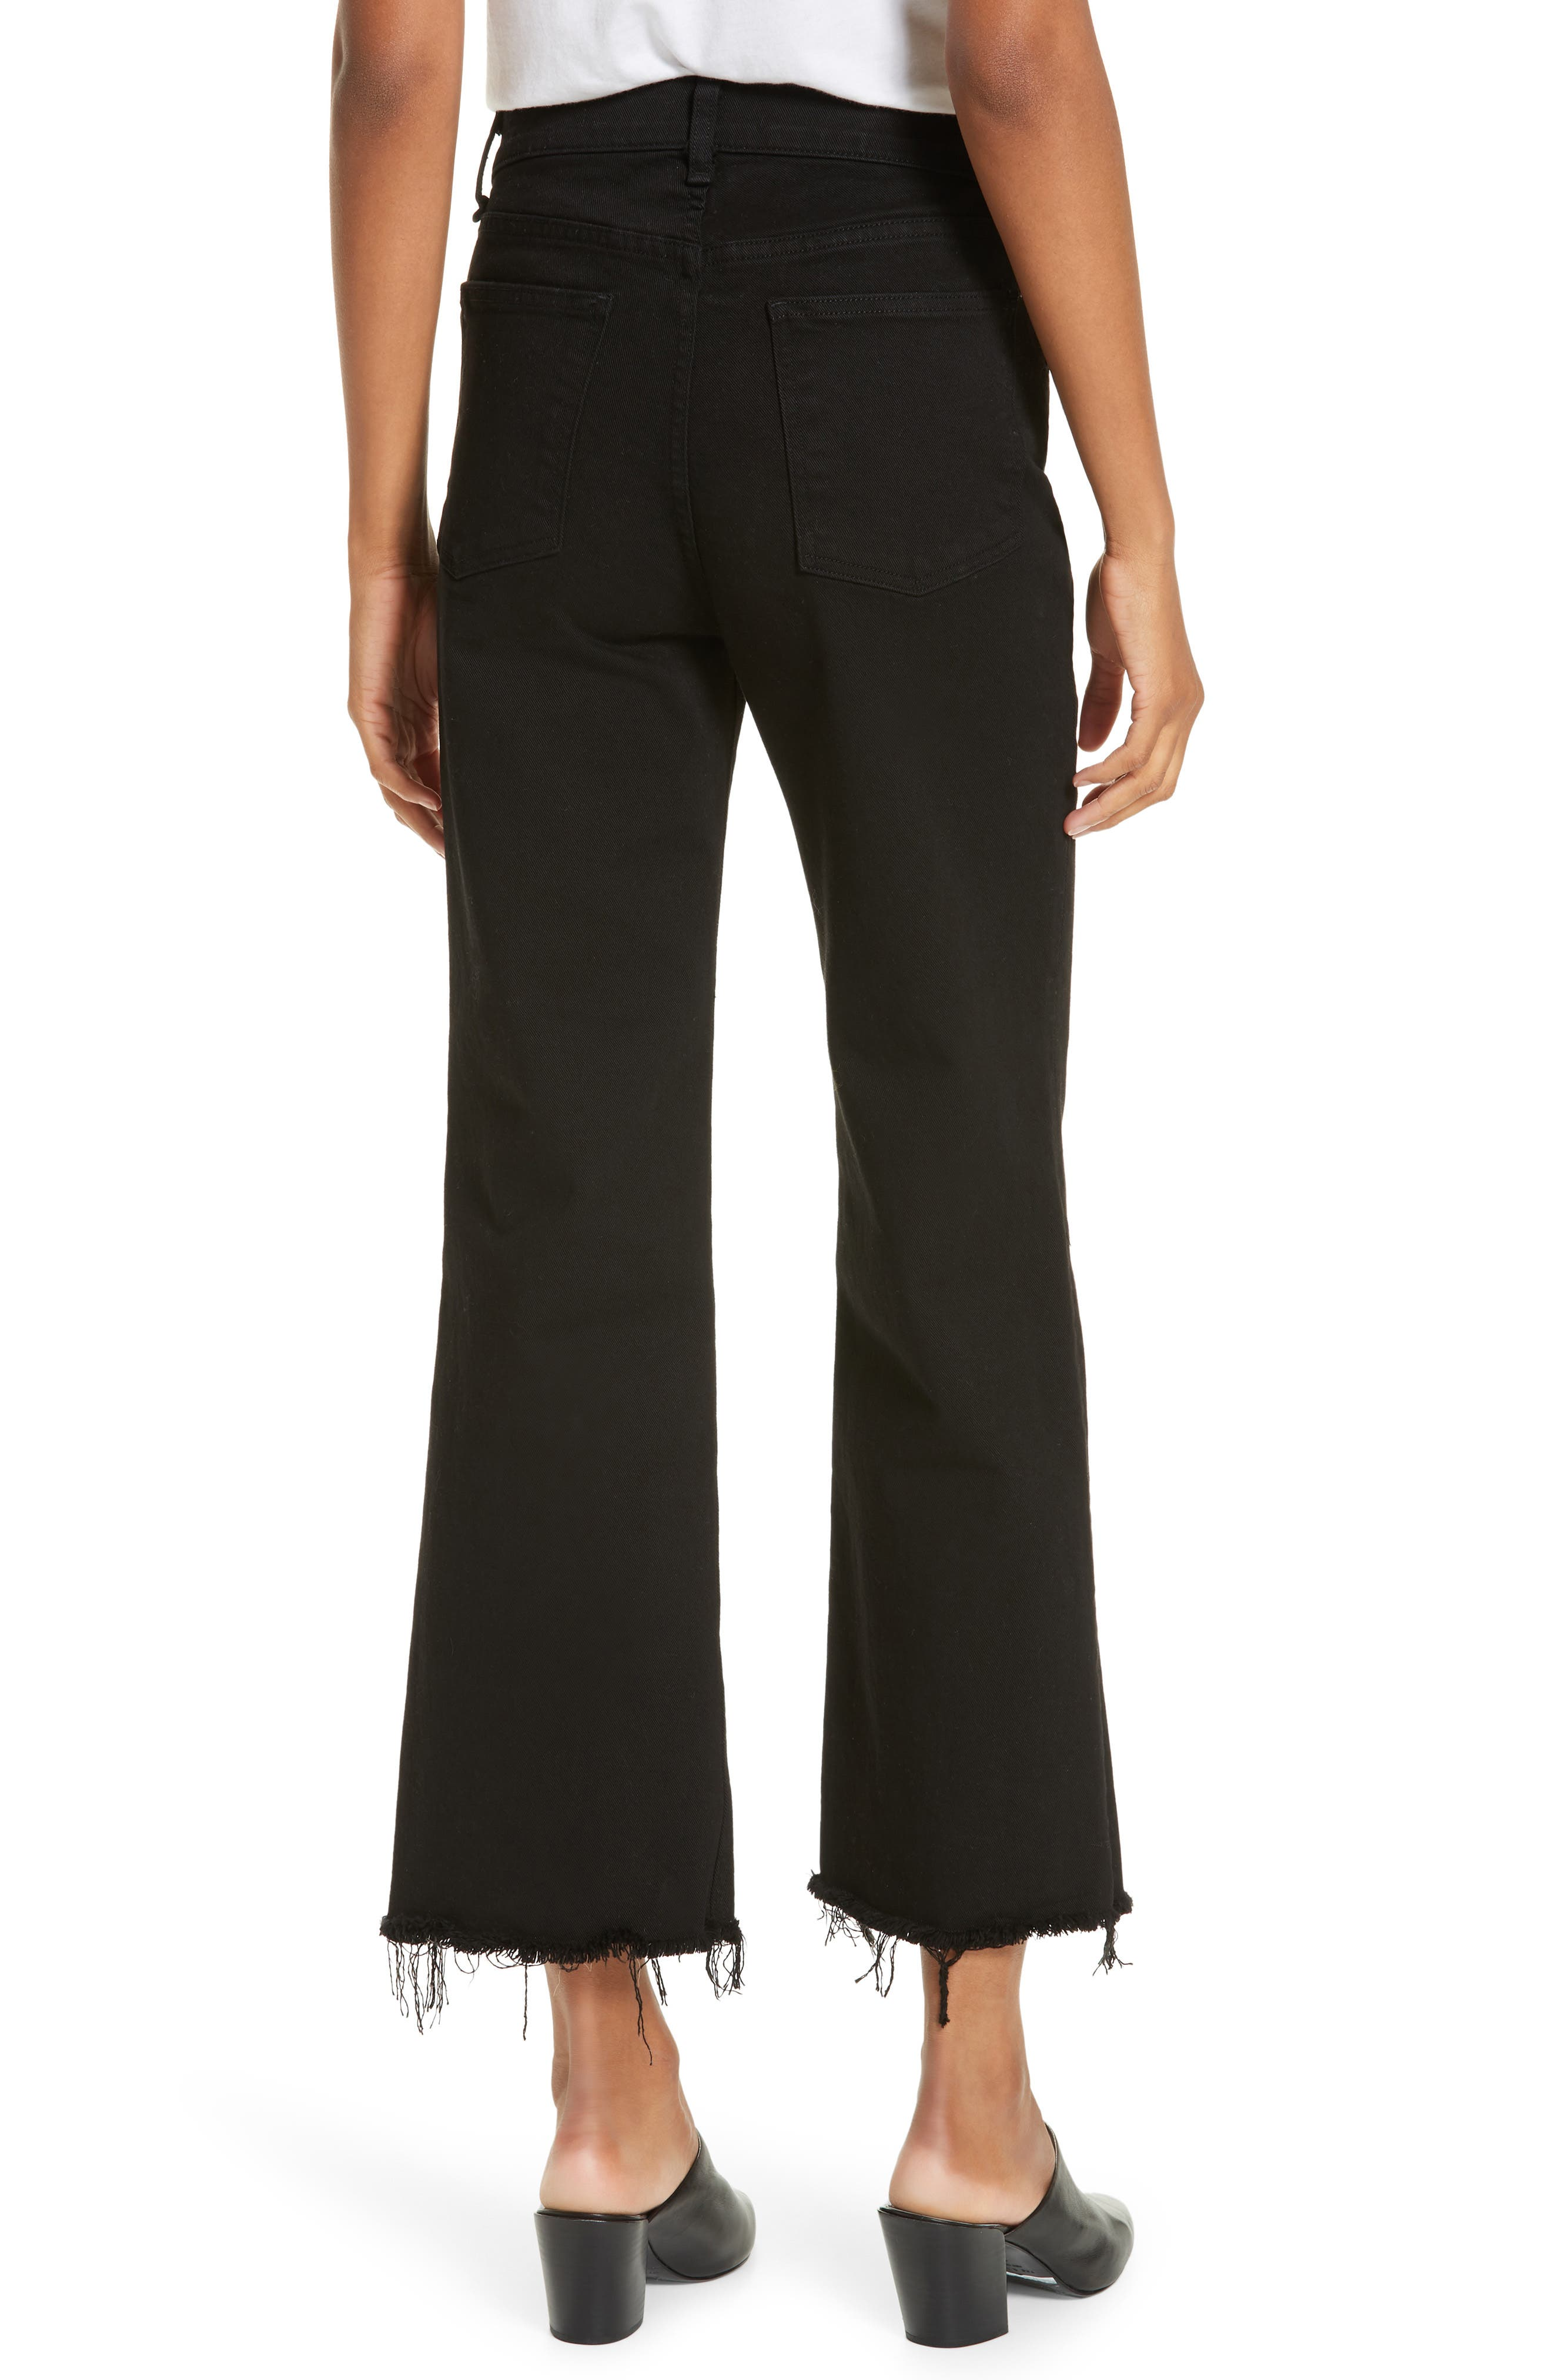 RAG & BONE,                             Justine High Waist Cutoff Wide Leg Jeans,                             Alternate thumbnail 2, color,                             BLACK